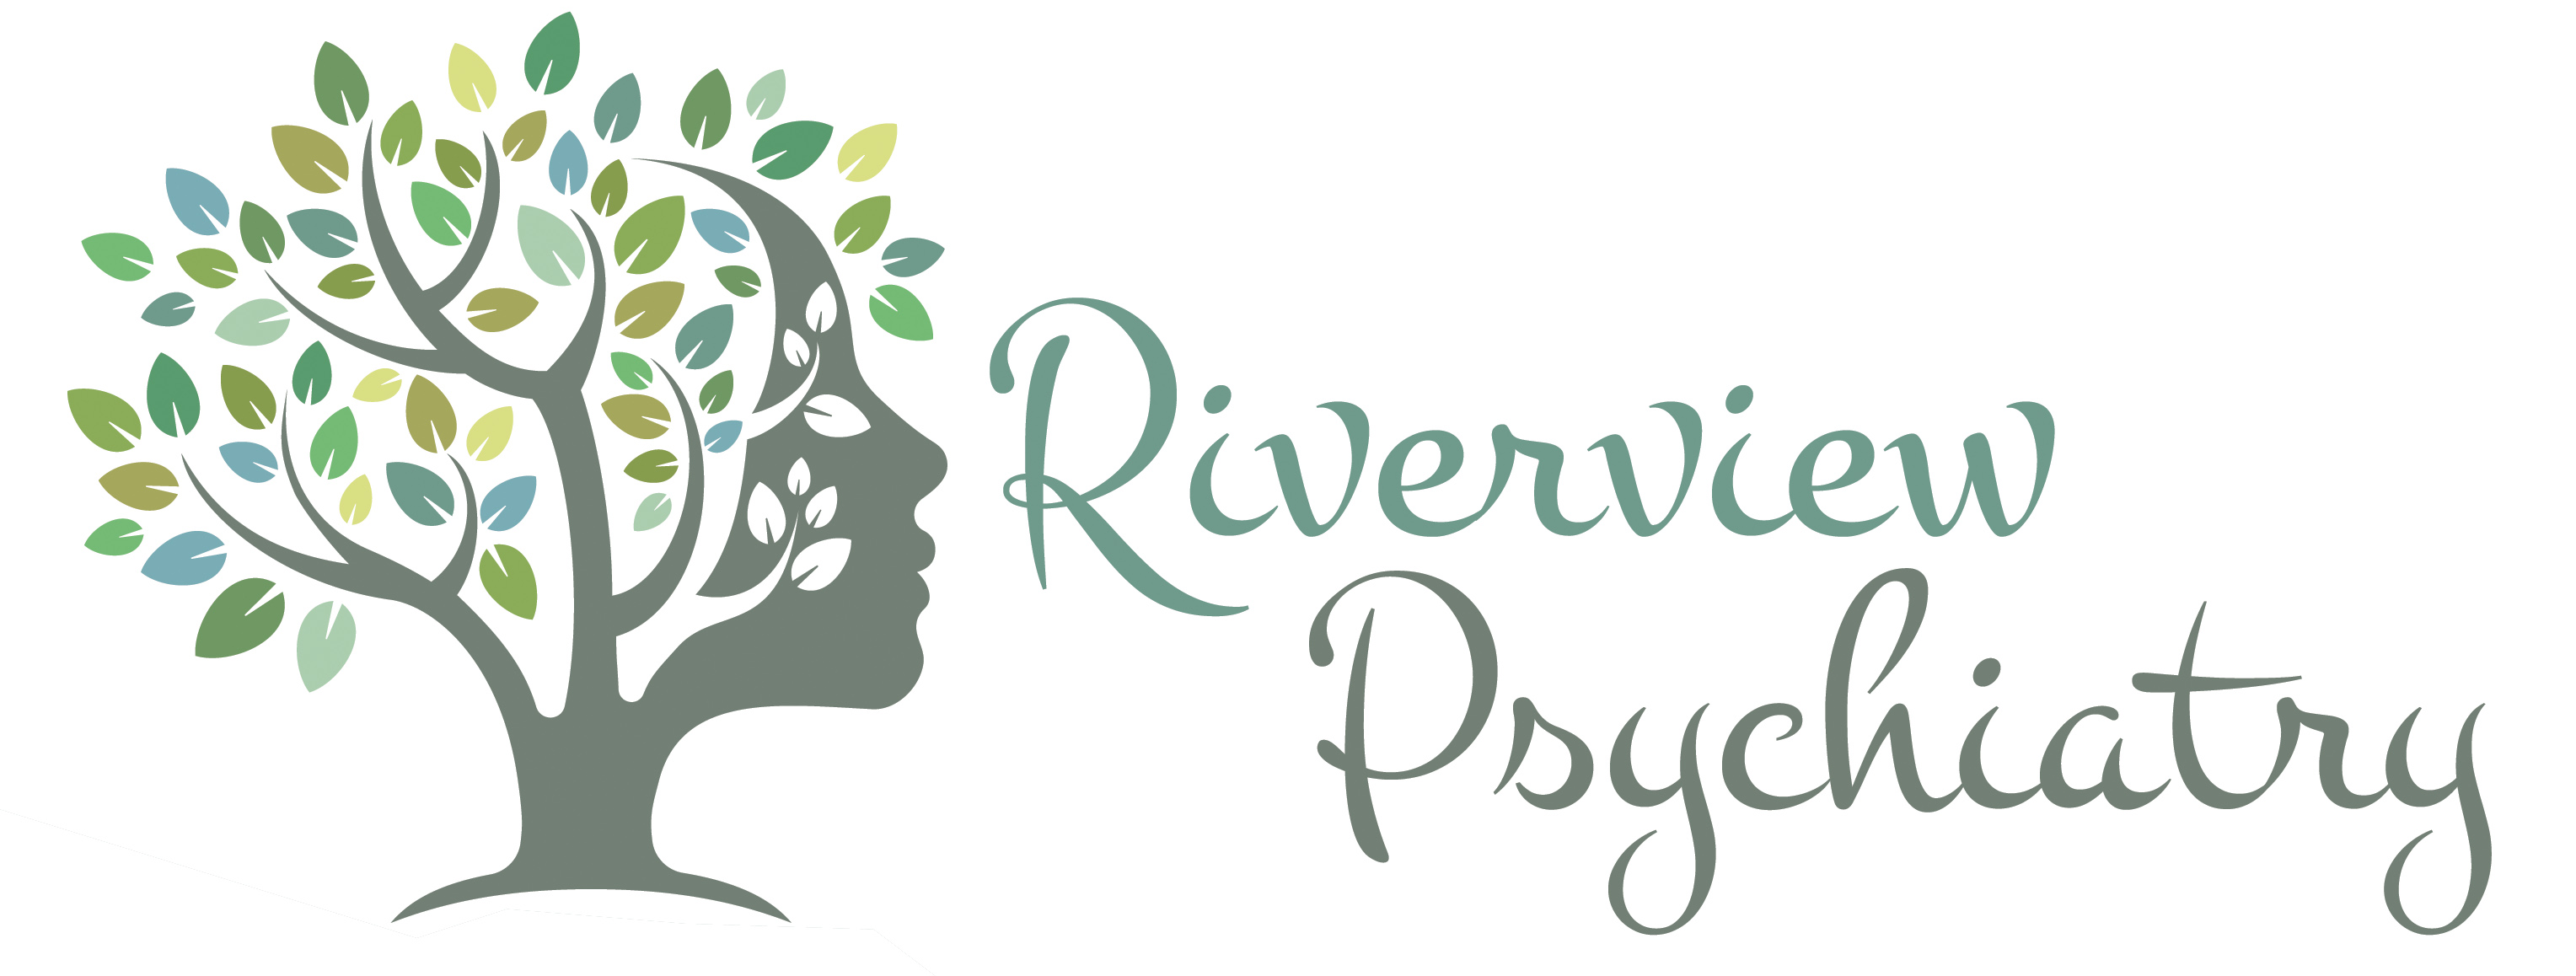 Riverview Psychiatry